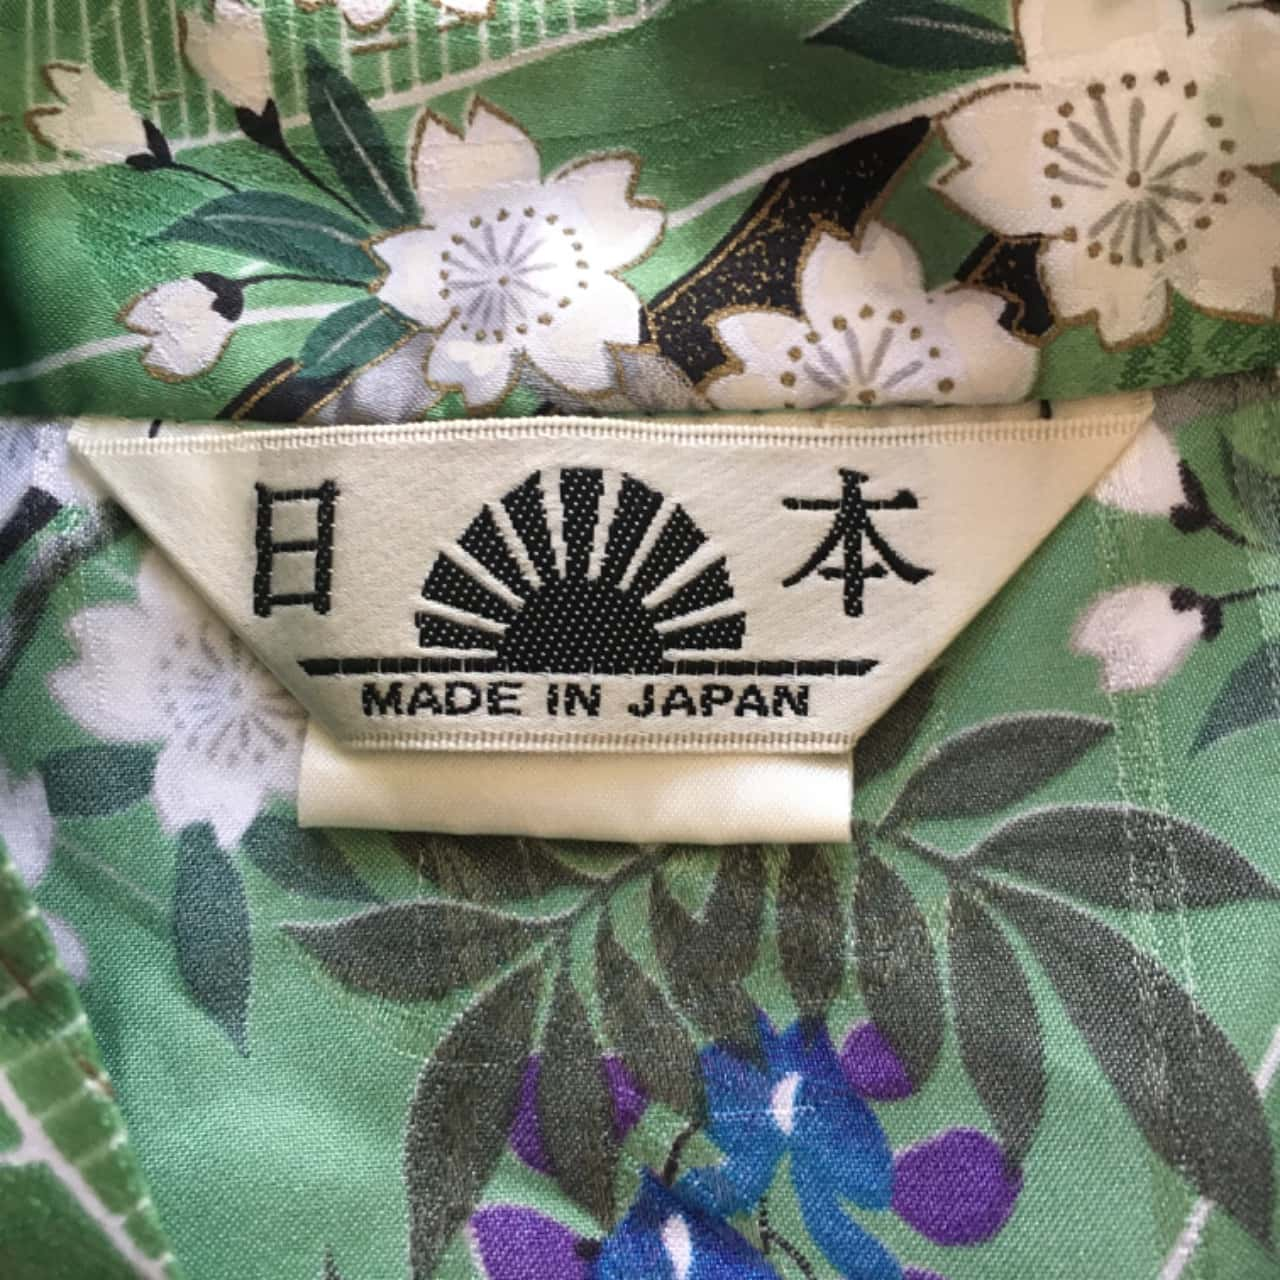 No Brand Girls Kimono, Green / Multicoloured, Made in Japan